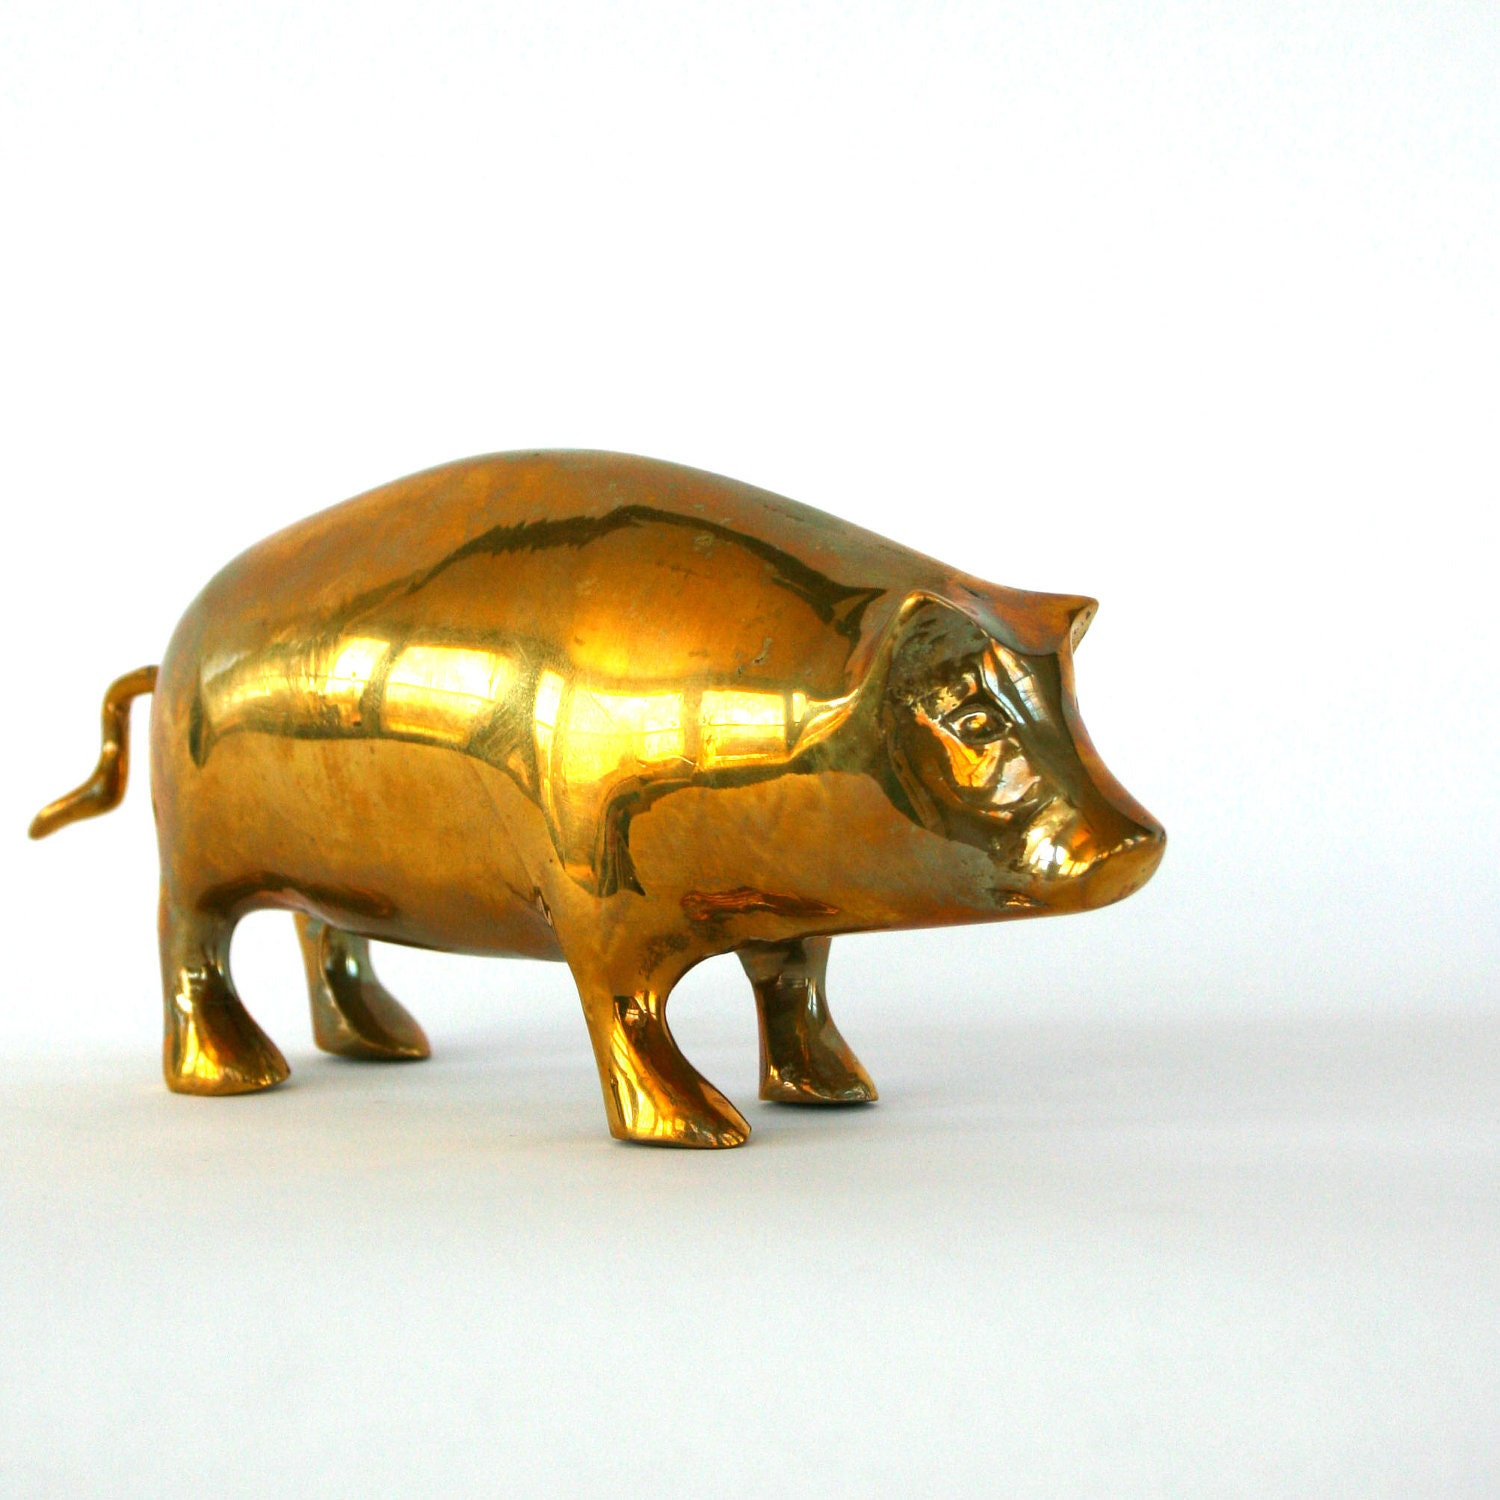 Primitive furniture - Vintage Brass Pig Figurine Gold Golden Spring Home Decor